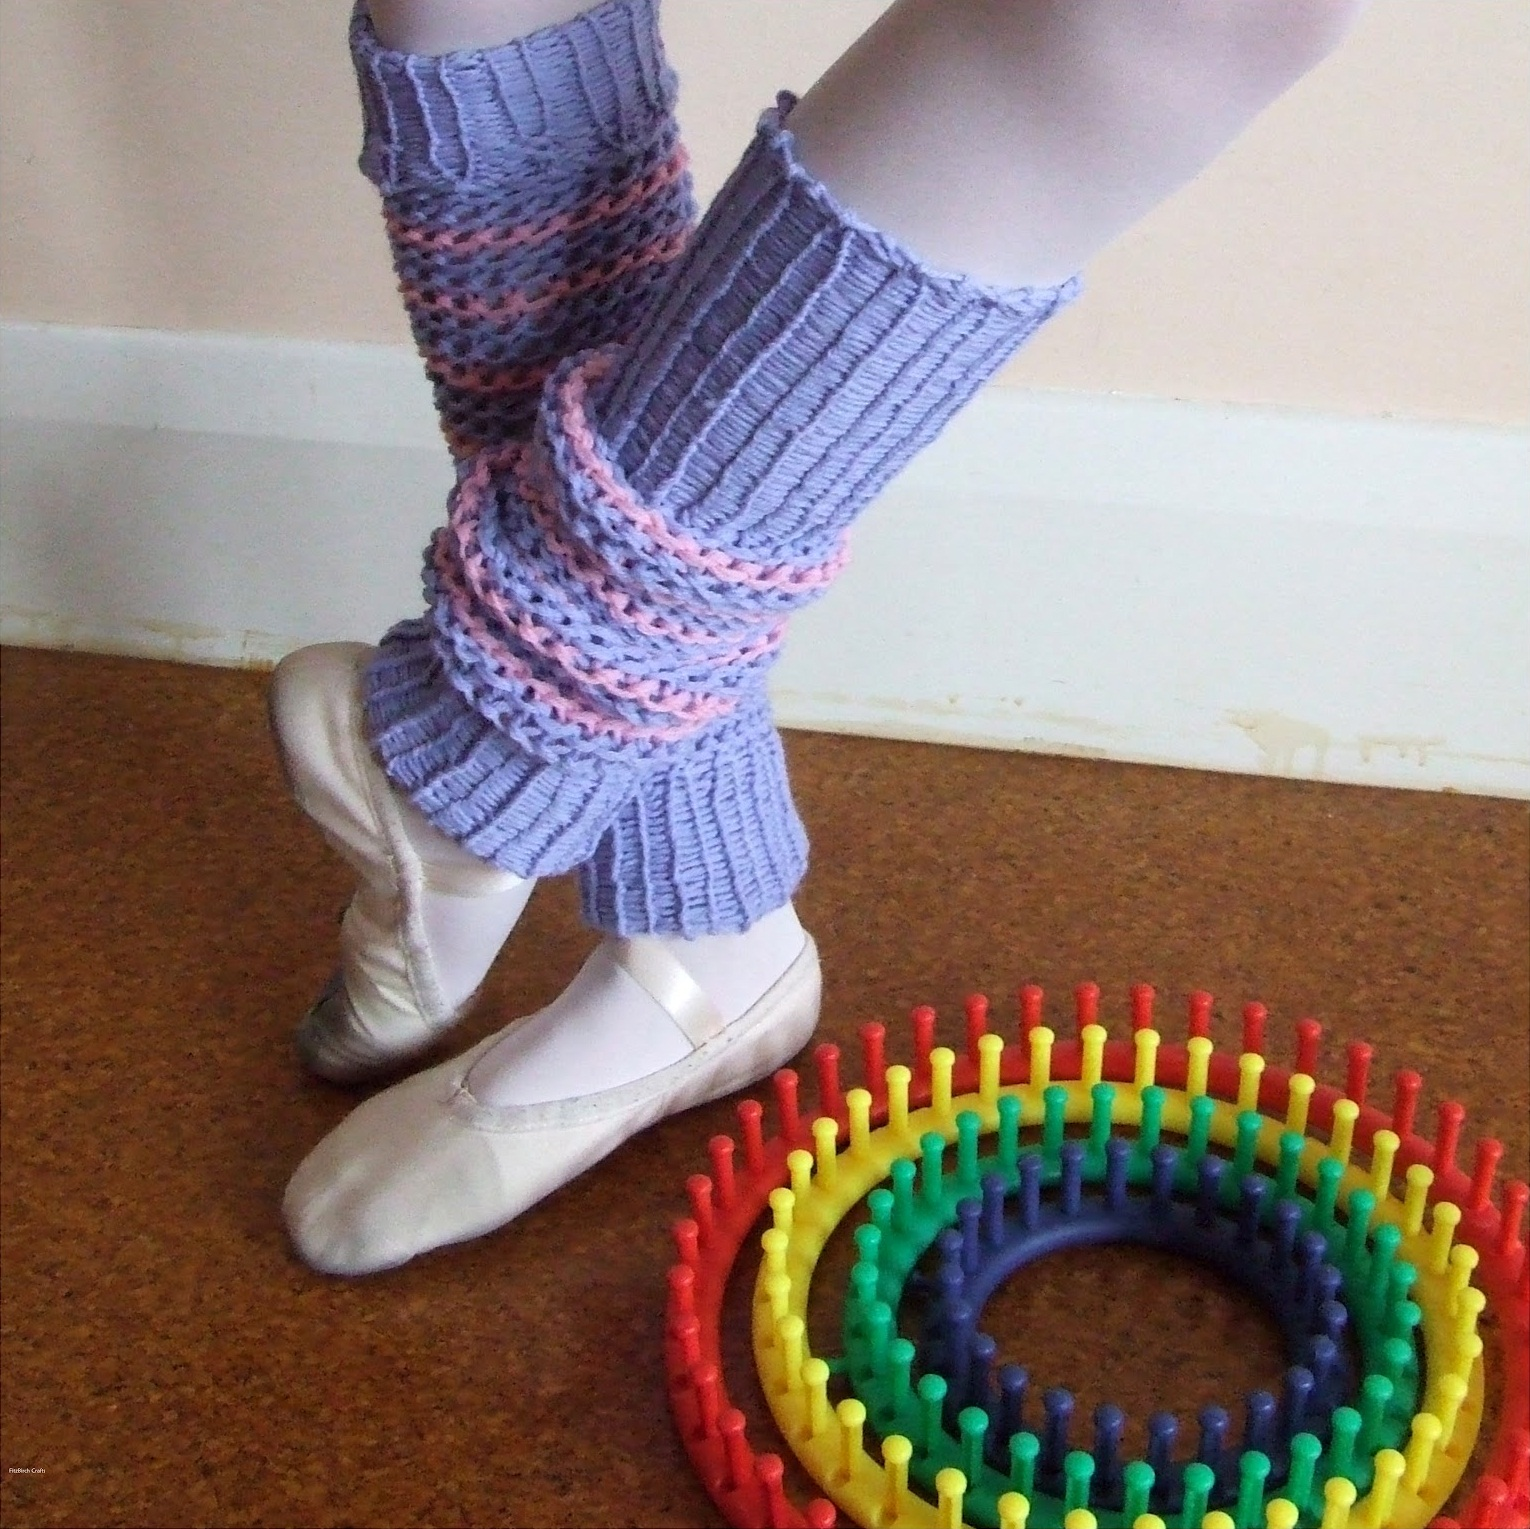 Round Loom Knitting Patterns | A Knitting Blog